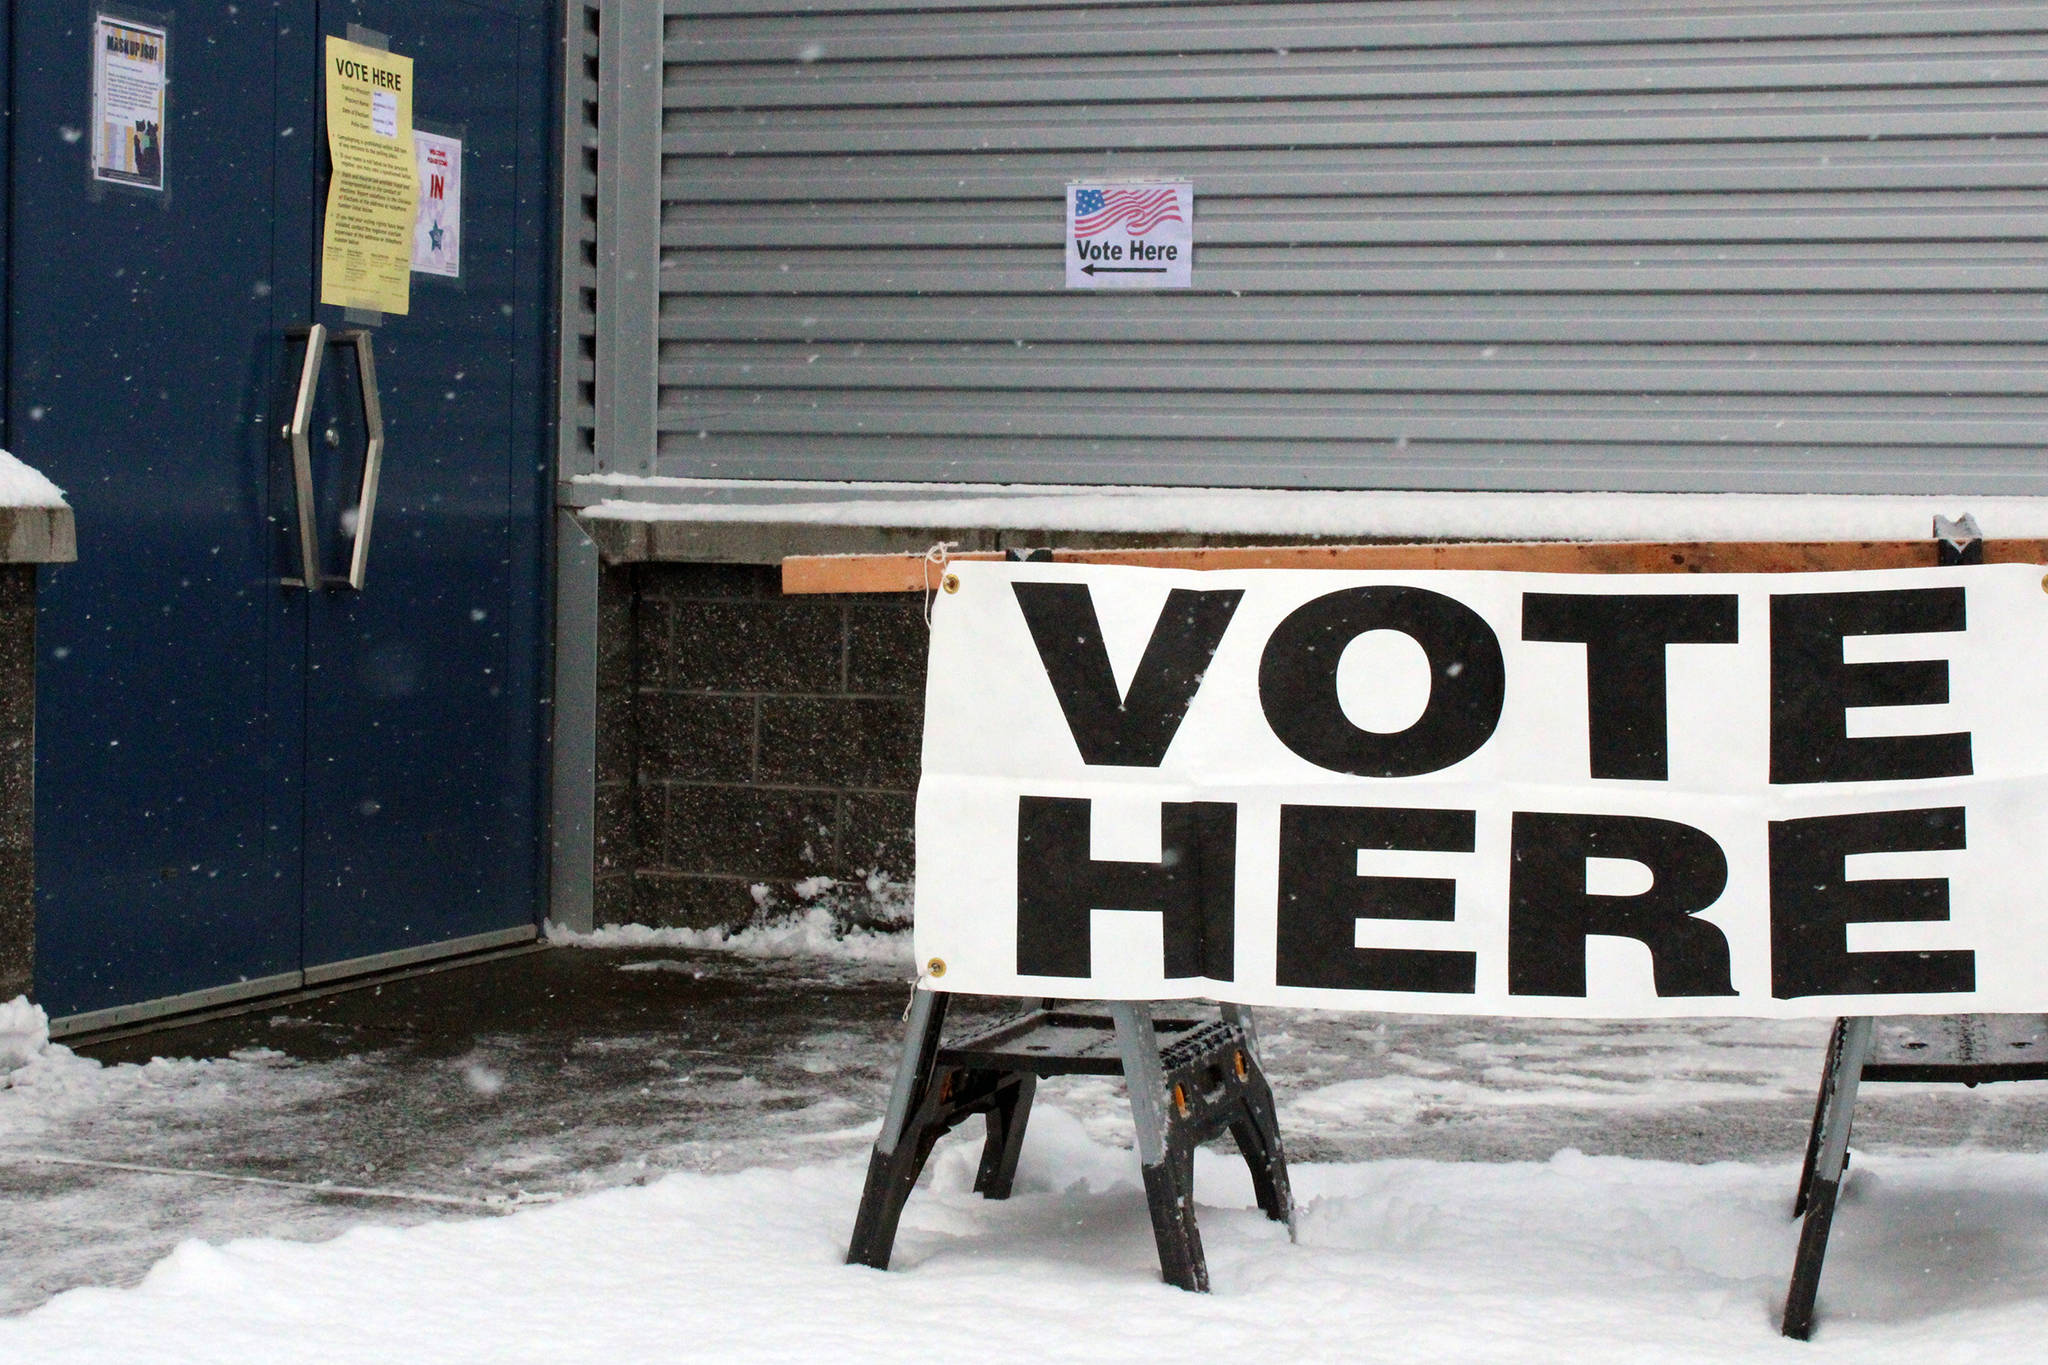 Thunder Mountain High School was used as a polling place on Election Day, Nov. 3, 2020. (Ben Hohenstatt / Juneau Empire)